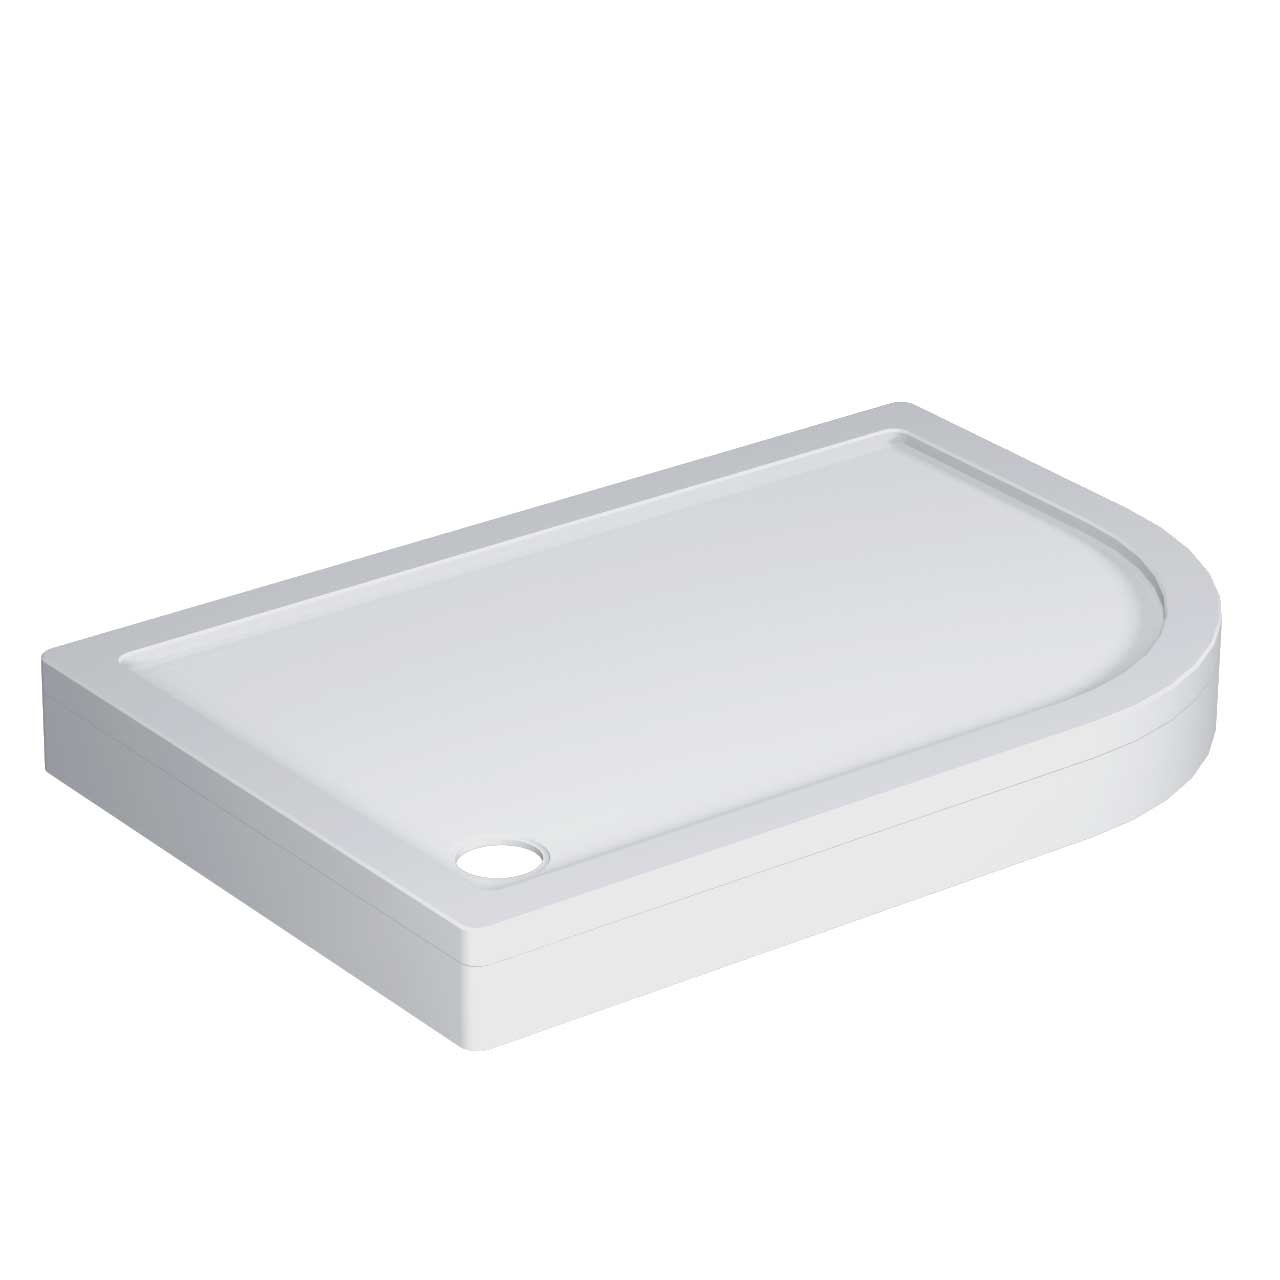 40mm Pearlstone 1200 x 800 Right Hand Offset Quadrant Shower Tray & Plinth Angled View